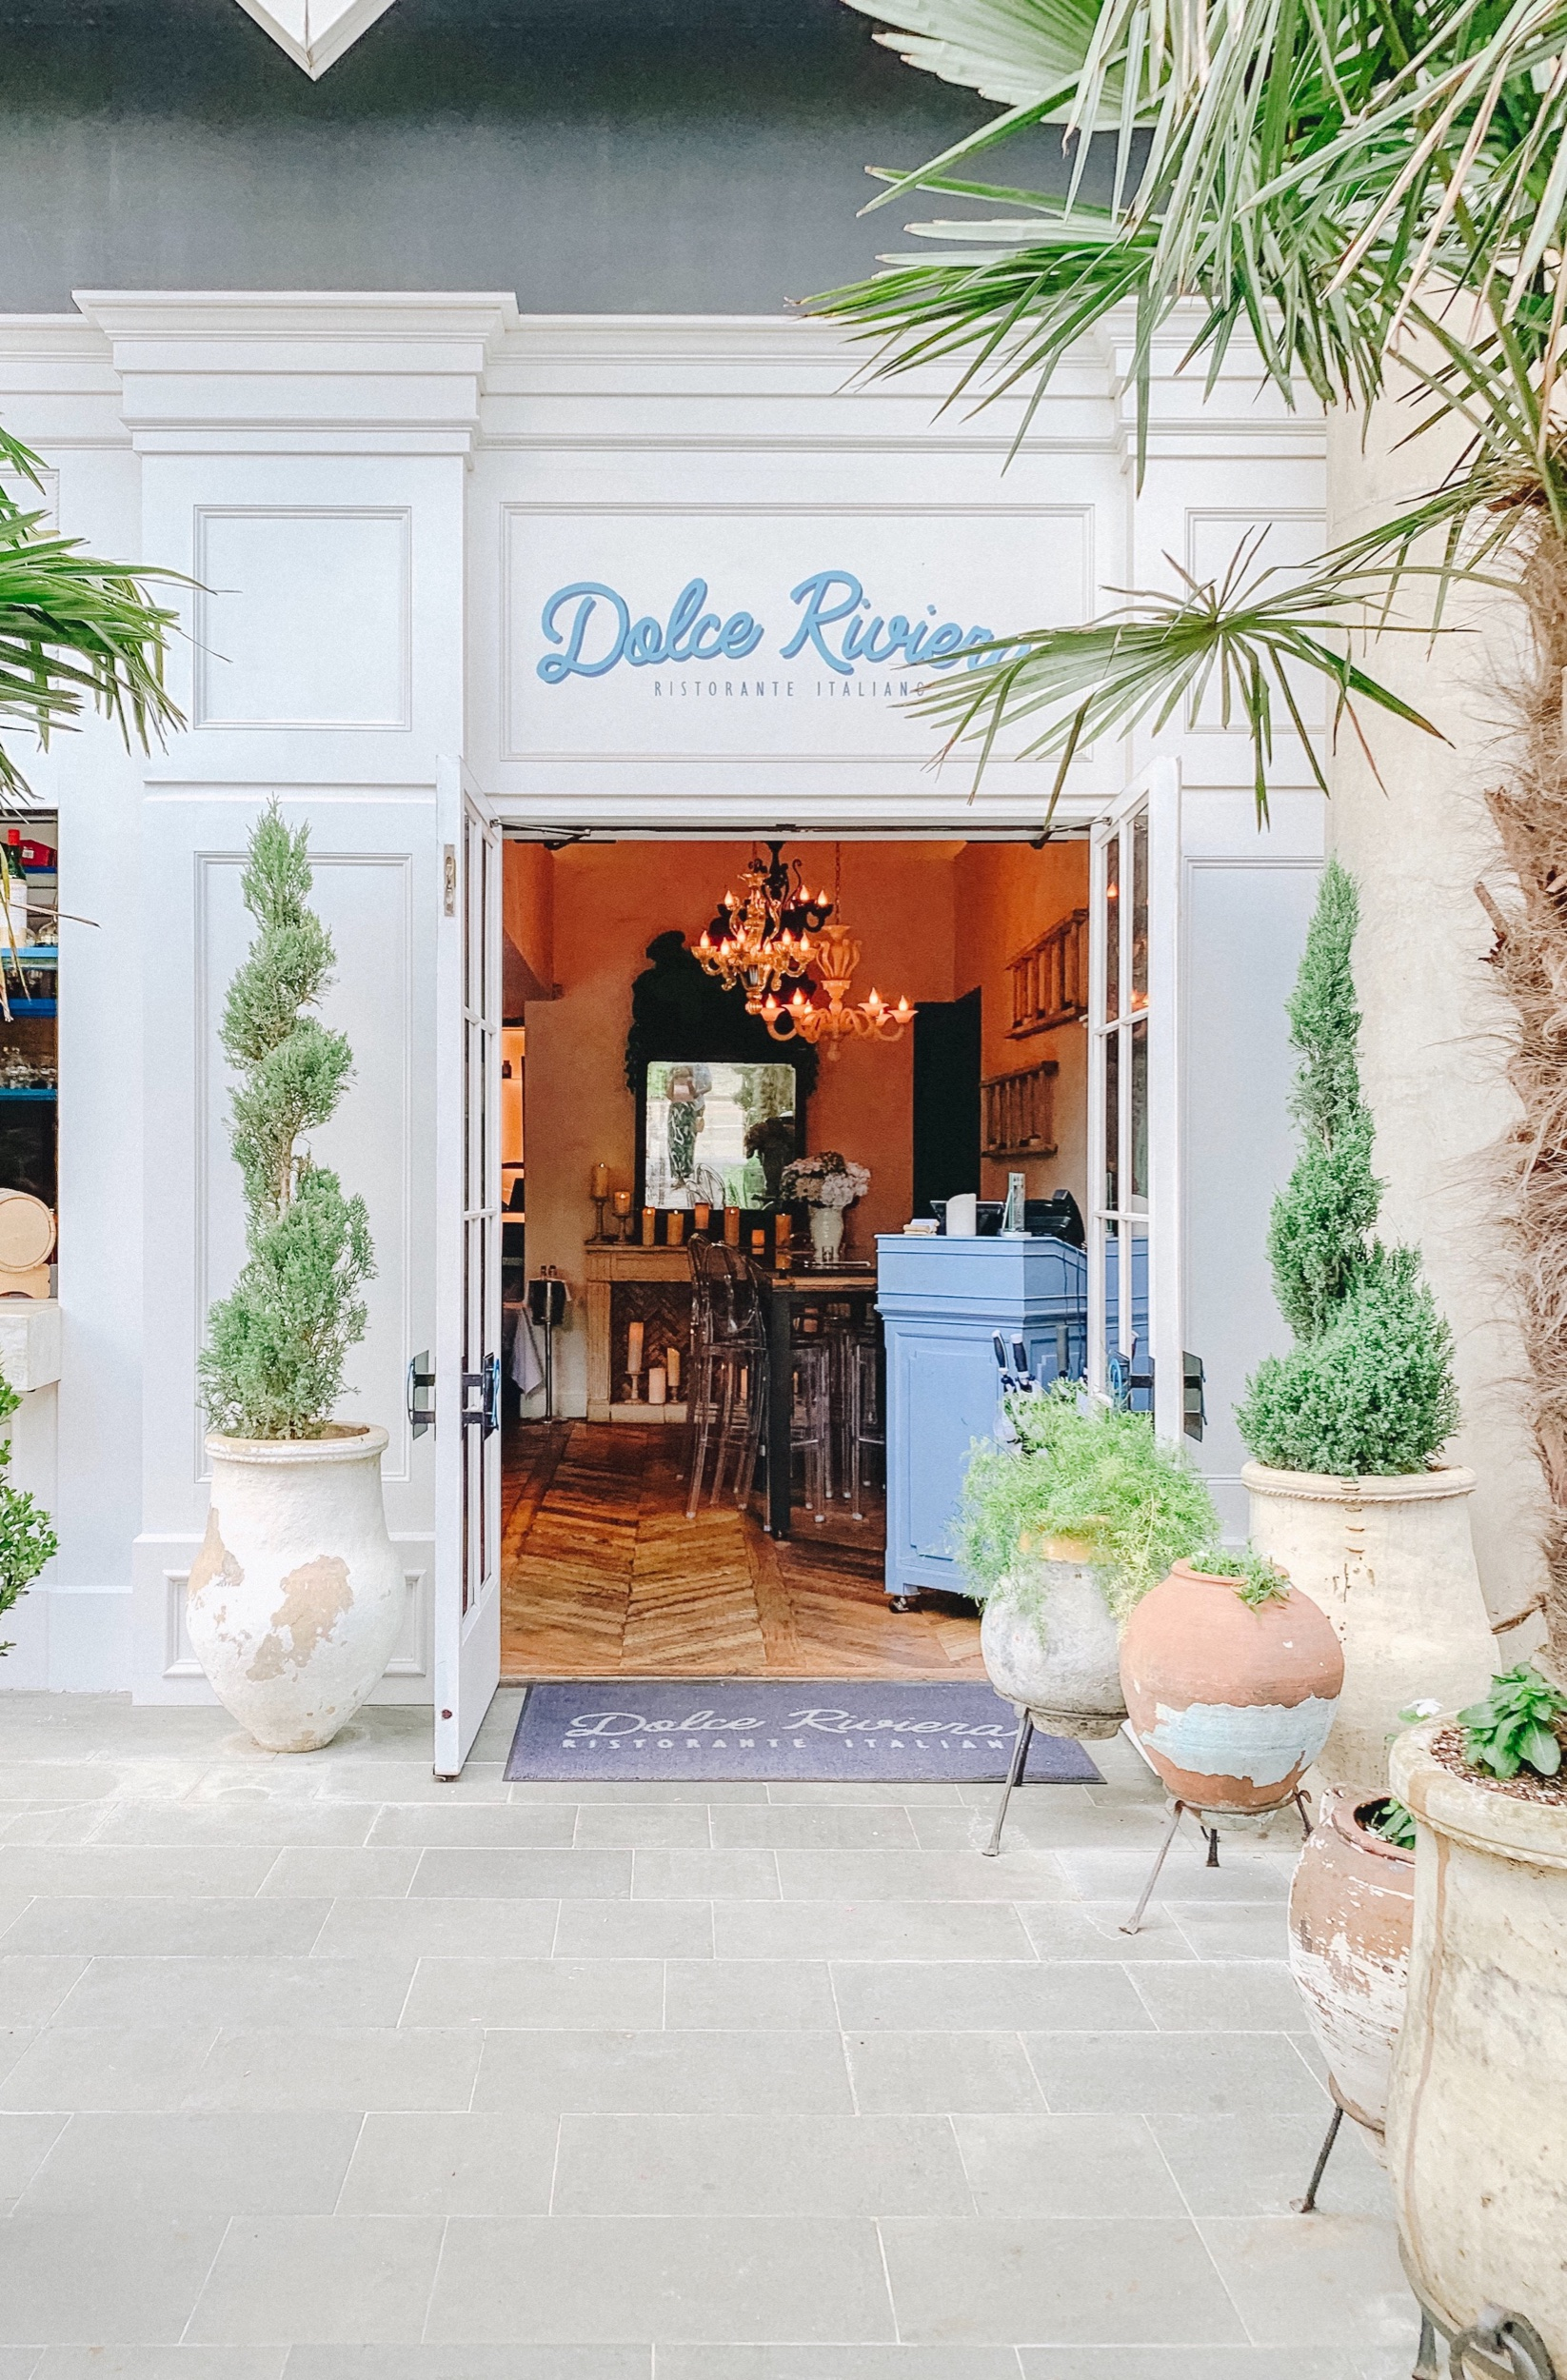 Pictured: Dolce Riviera